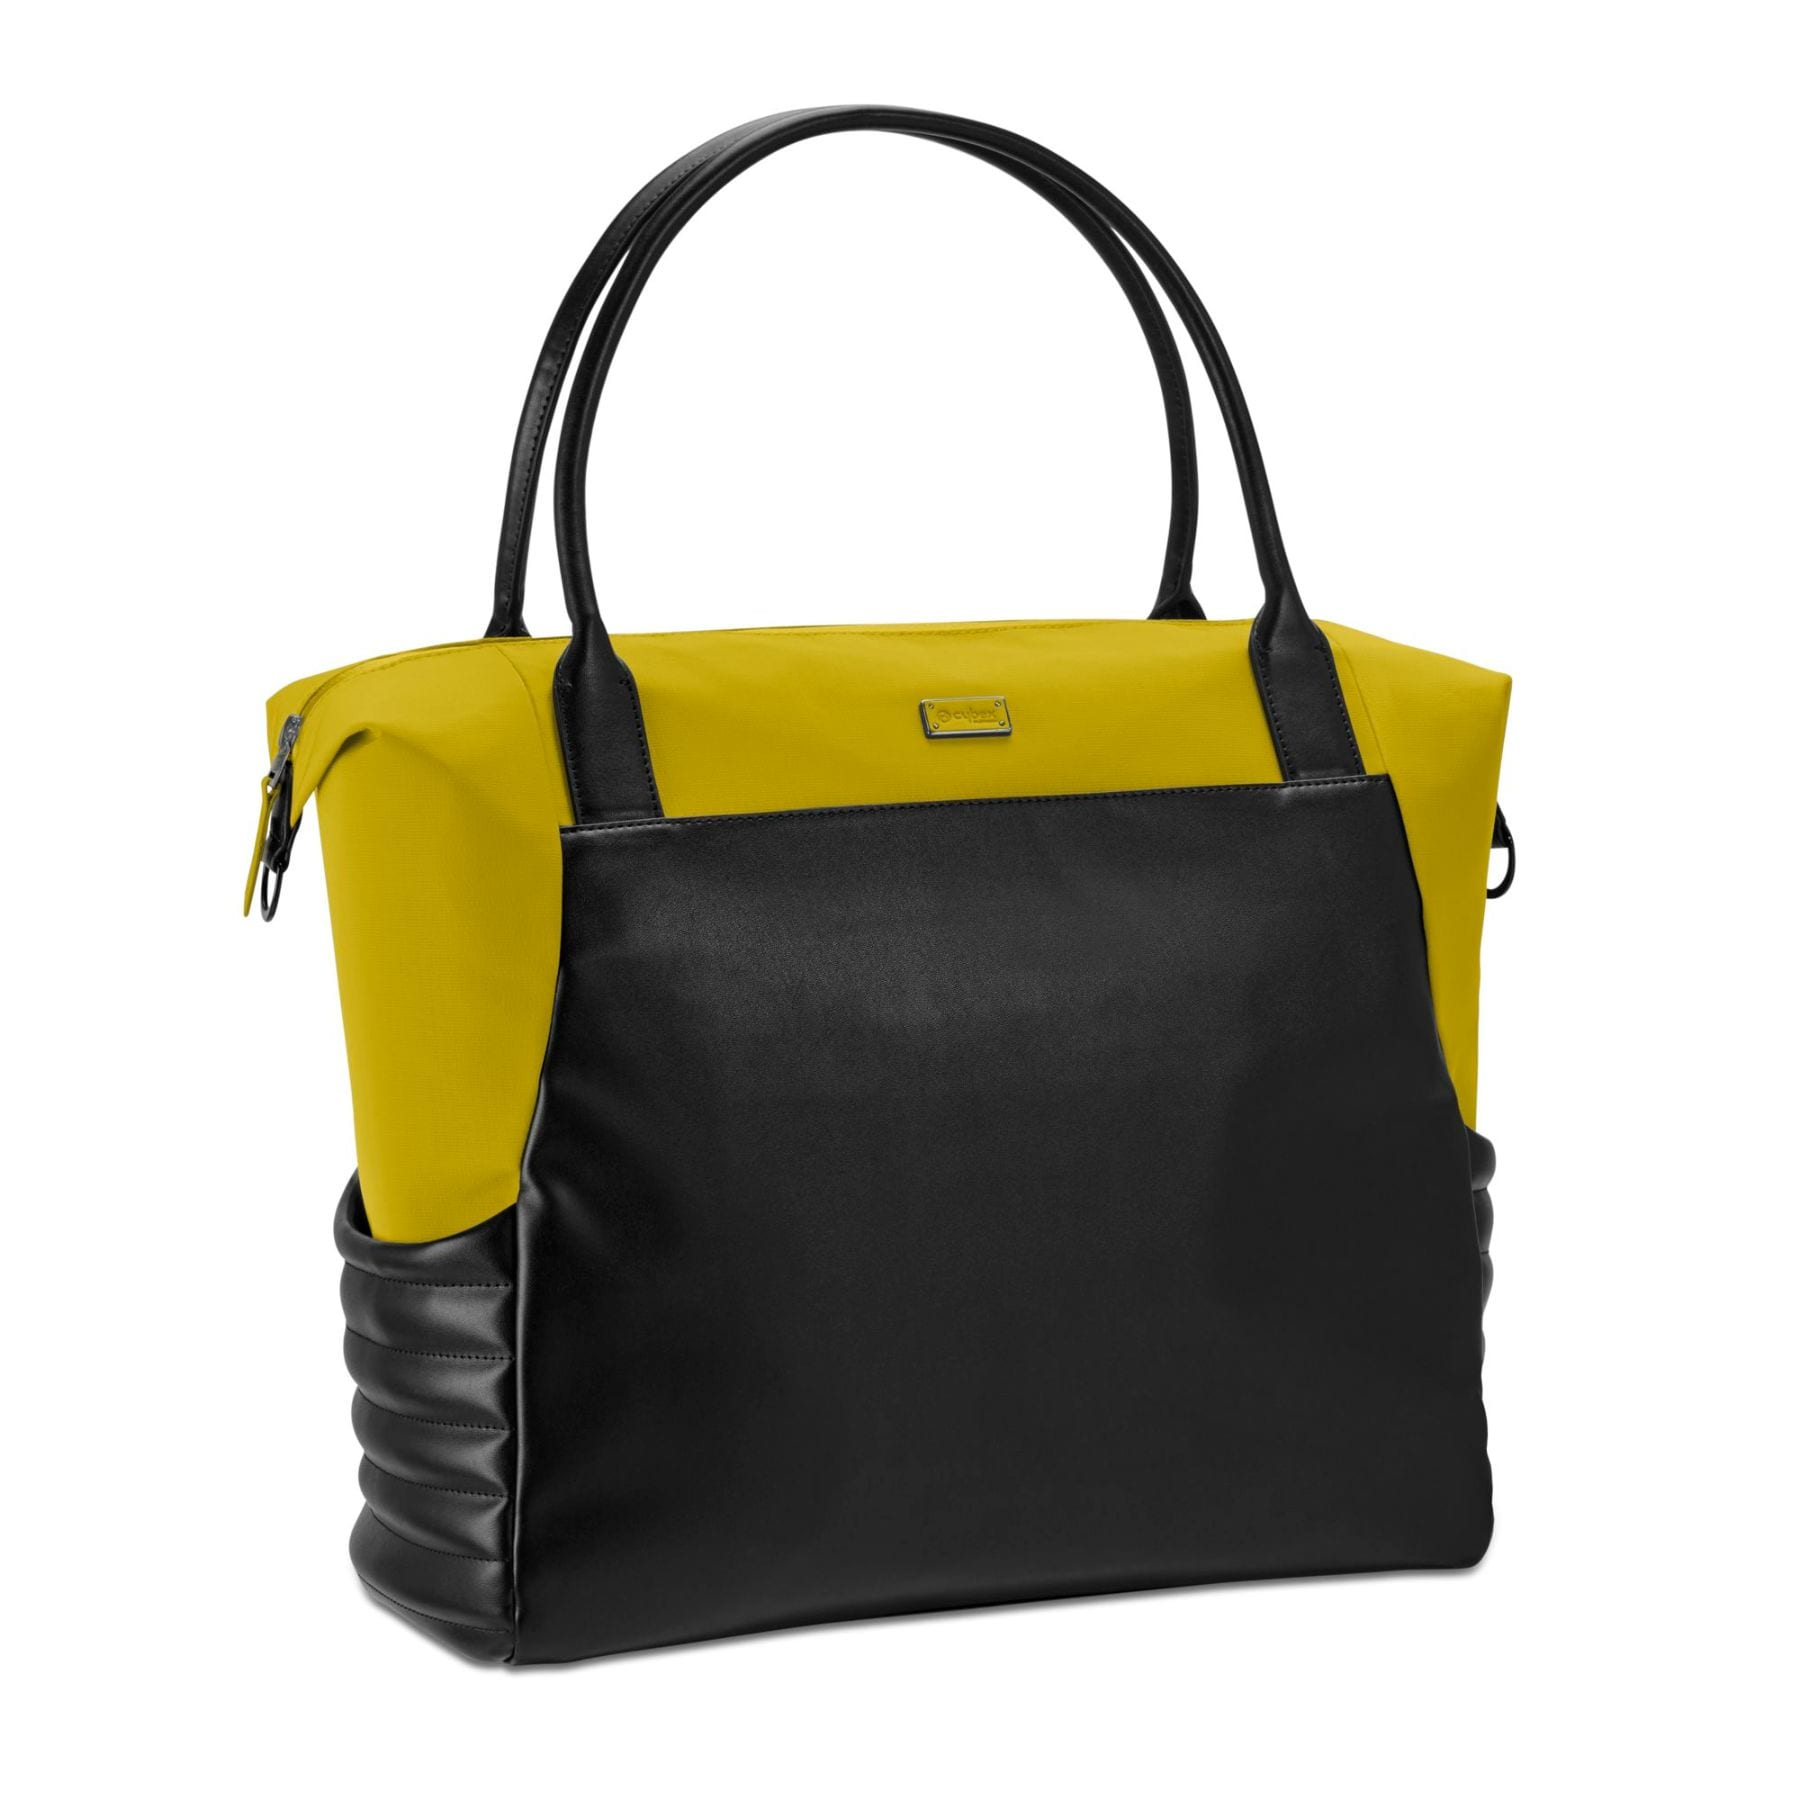 Cybex Priam Changing Bag - Mustard Yellow